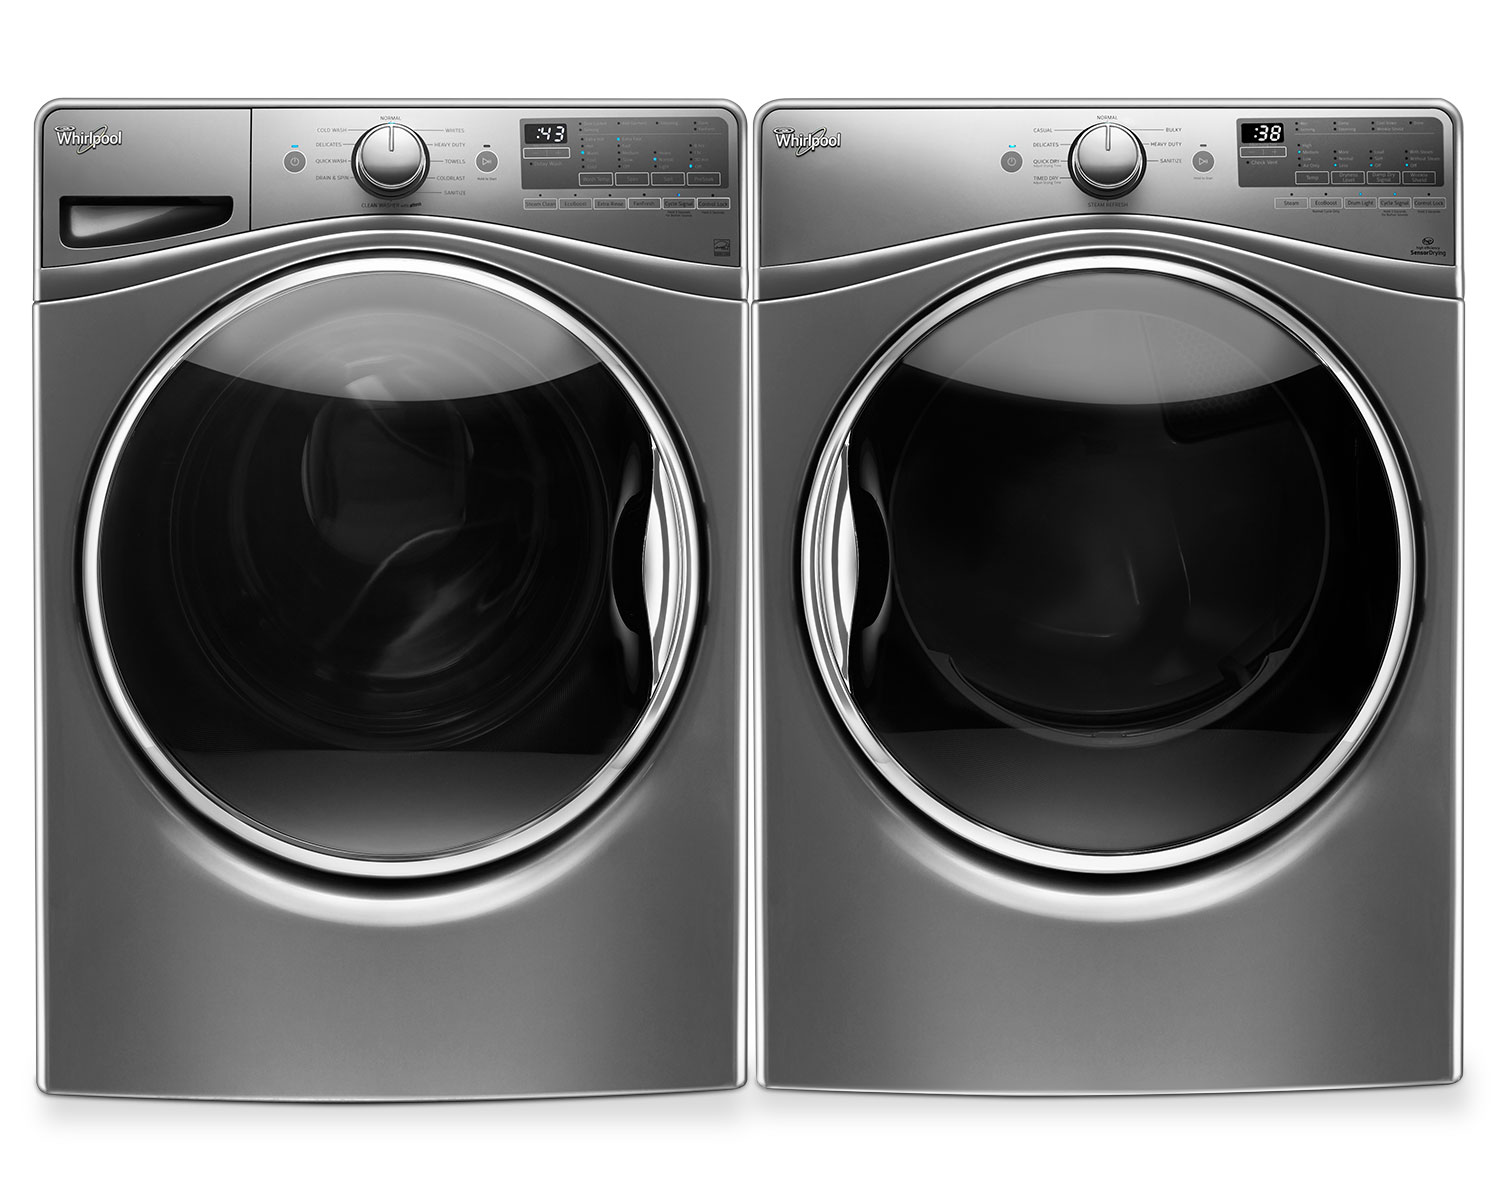 [Whirlpool Chrome Shadow Front-Load Laundry Pair]